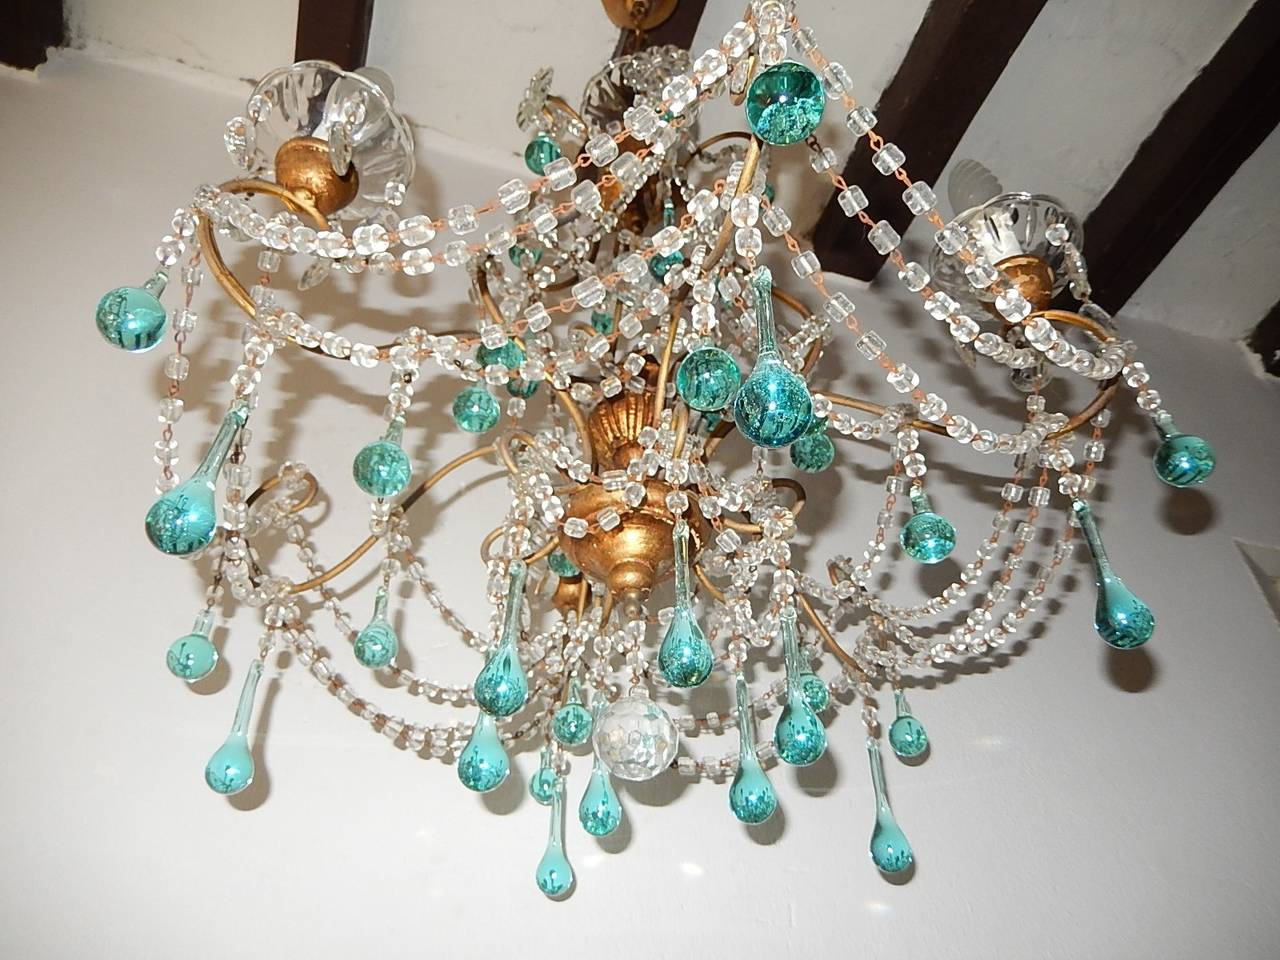 French Aqua Blue Balls And Drops Crystal Chandelier Circa At - Chandelier crystals blue